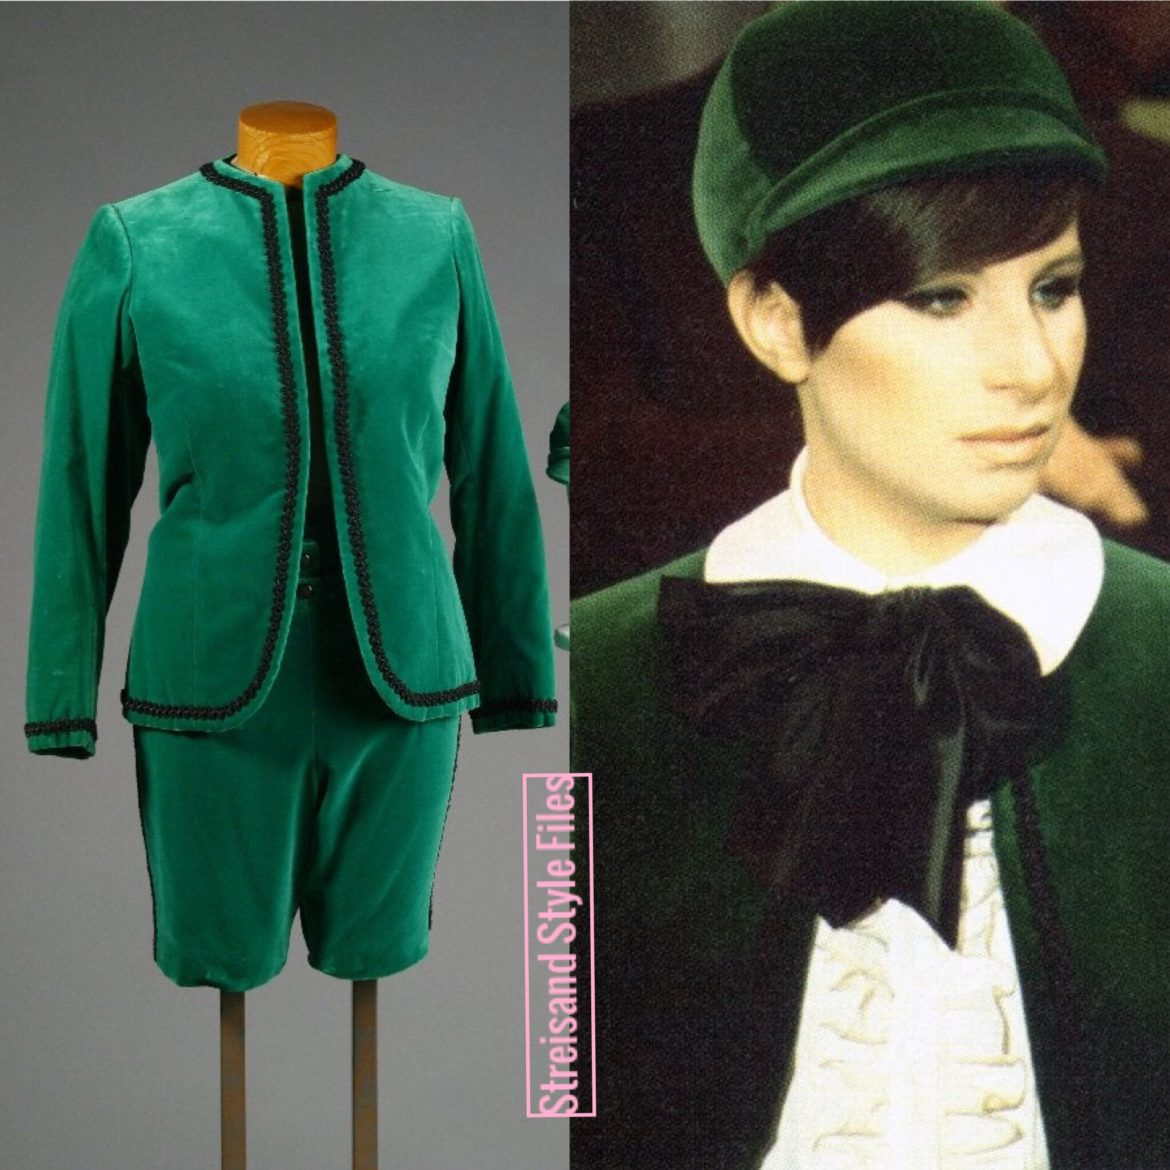 "The Belle Of 14th Street ""Little Lord Fauntleroy"" Green Suit"